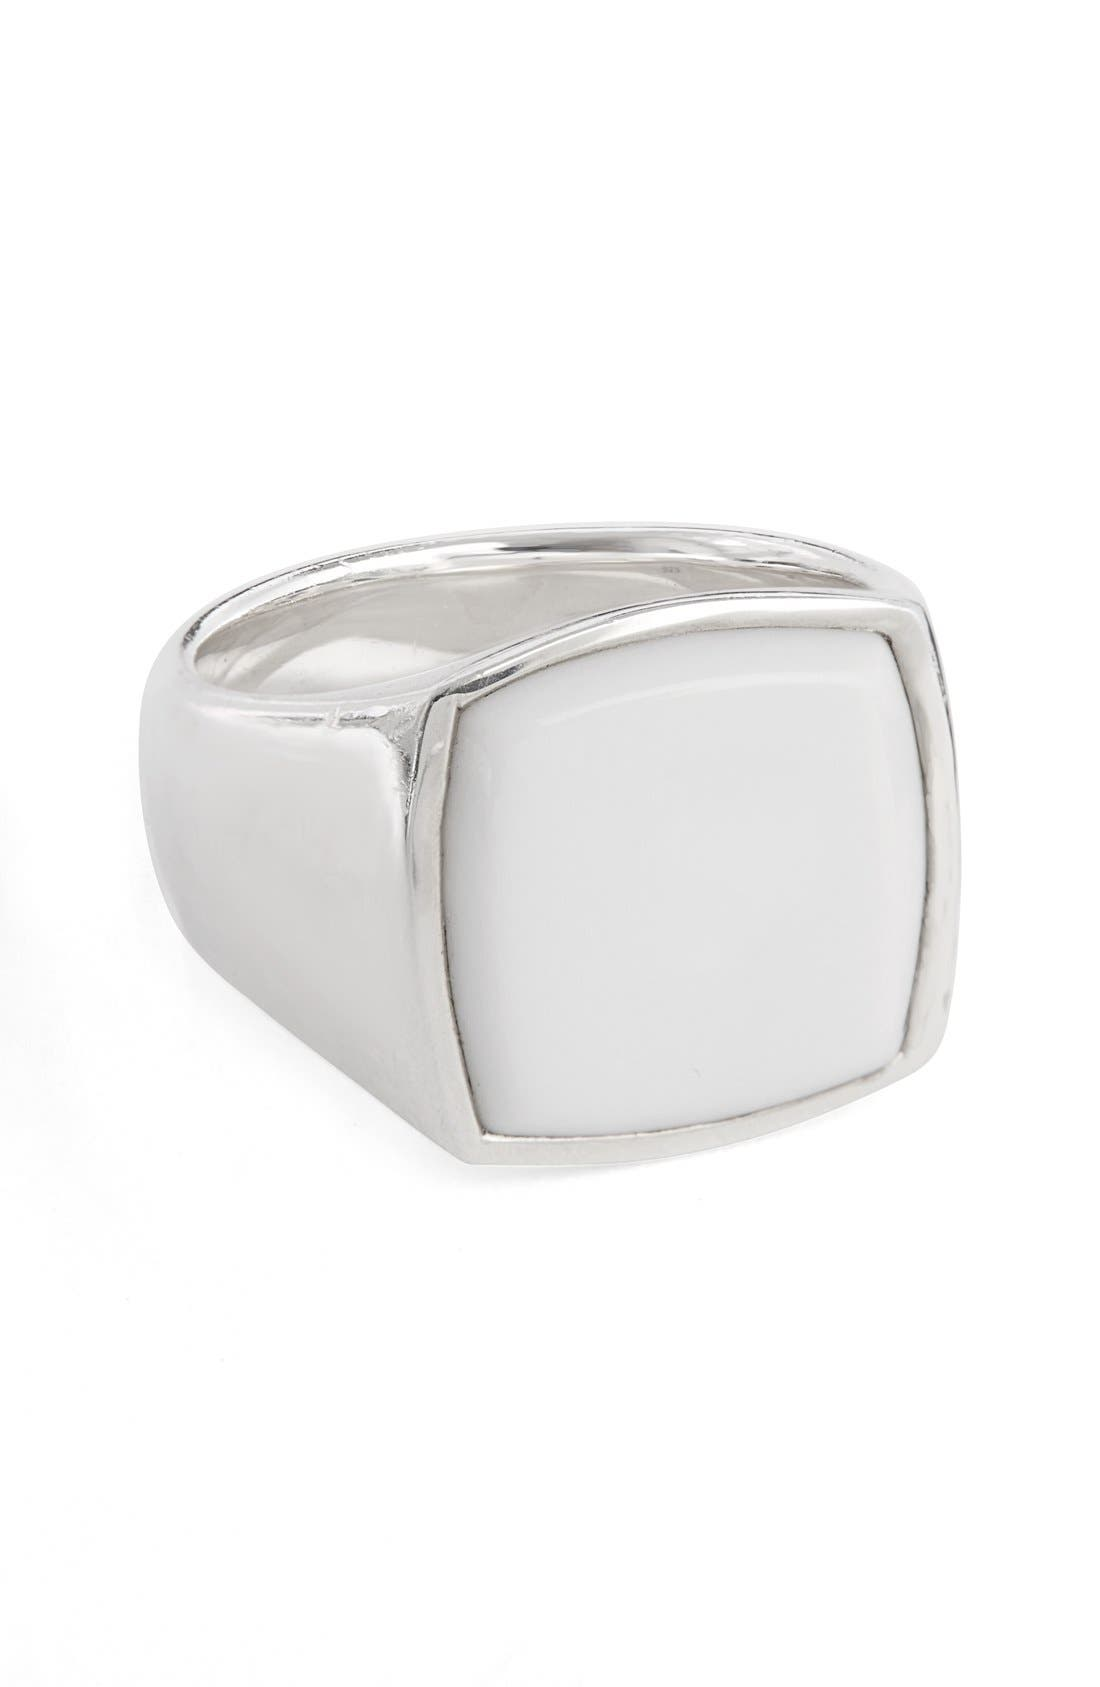 White Agate Cushion Signet Ring,                         Main,                         color, Silver Agate